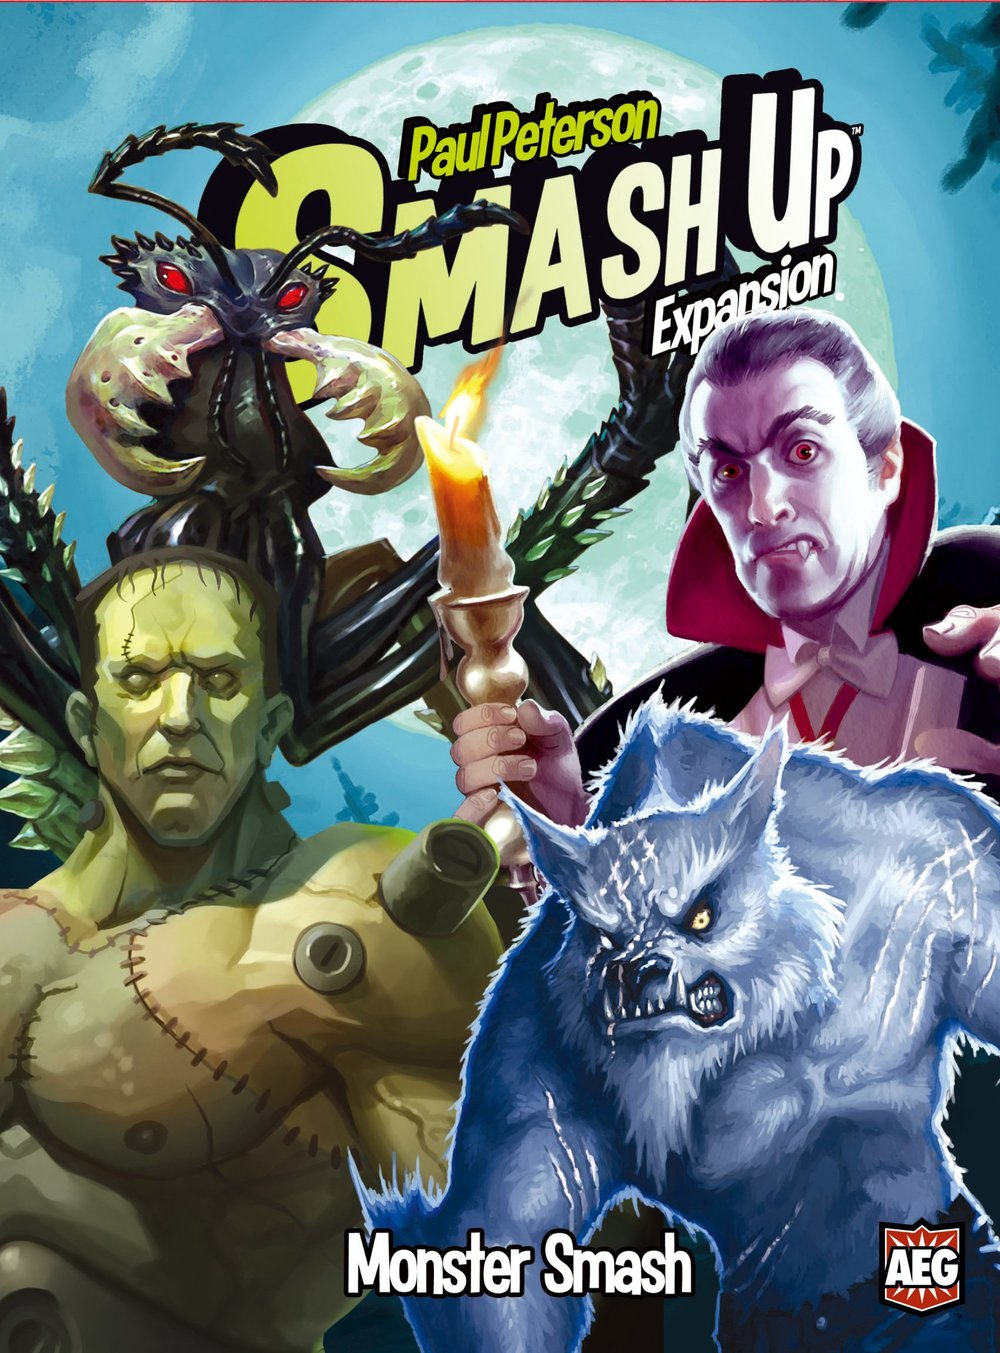 Monster Smash - We were working the lab, late one night... then we made Monster Smash! This expansion to Smash Up brings you four new creepy decks to scare your opponents to death! or at least beat them to 15 points. Vampires drain power from their victims. Mad Scientists construct bizarre creations of great strength. Werewolves go berserk with power. Giant Ants swarm their victims. It's enough to make you run out of the theater in terror! Smash Up lets you bring together various groups from Geekdom to create decks that will smash your opponents! Combine Wizard Pirates, or Ninja Dinosaurs, or Robot Vampires! Fight to score the most points and win the game. Key Selling Points - Four all-new factions for Smash Up! - Great monster/halloween theme for this fall!